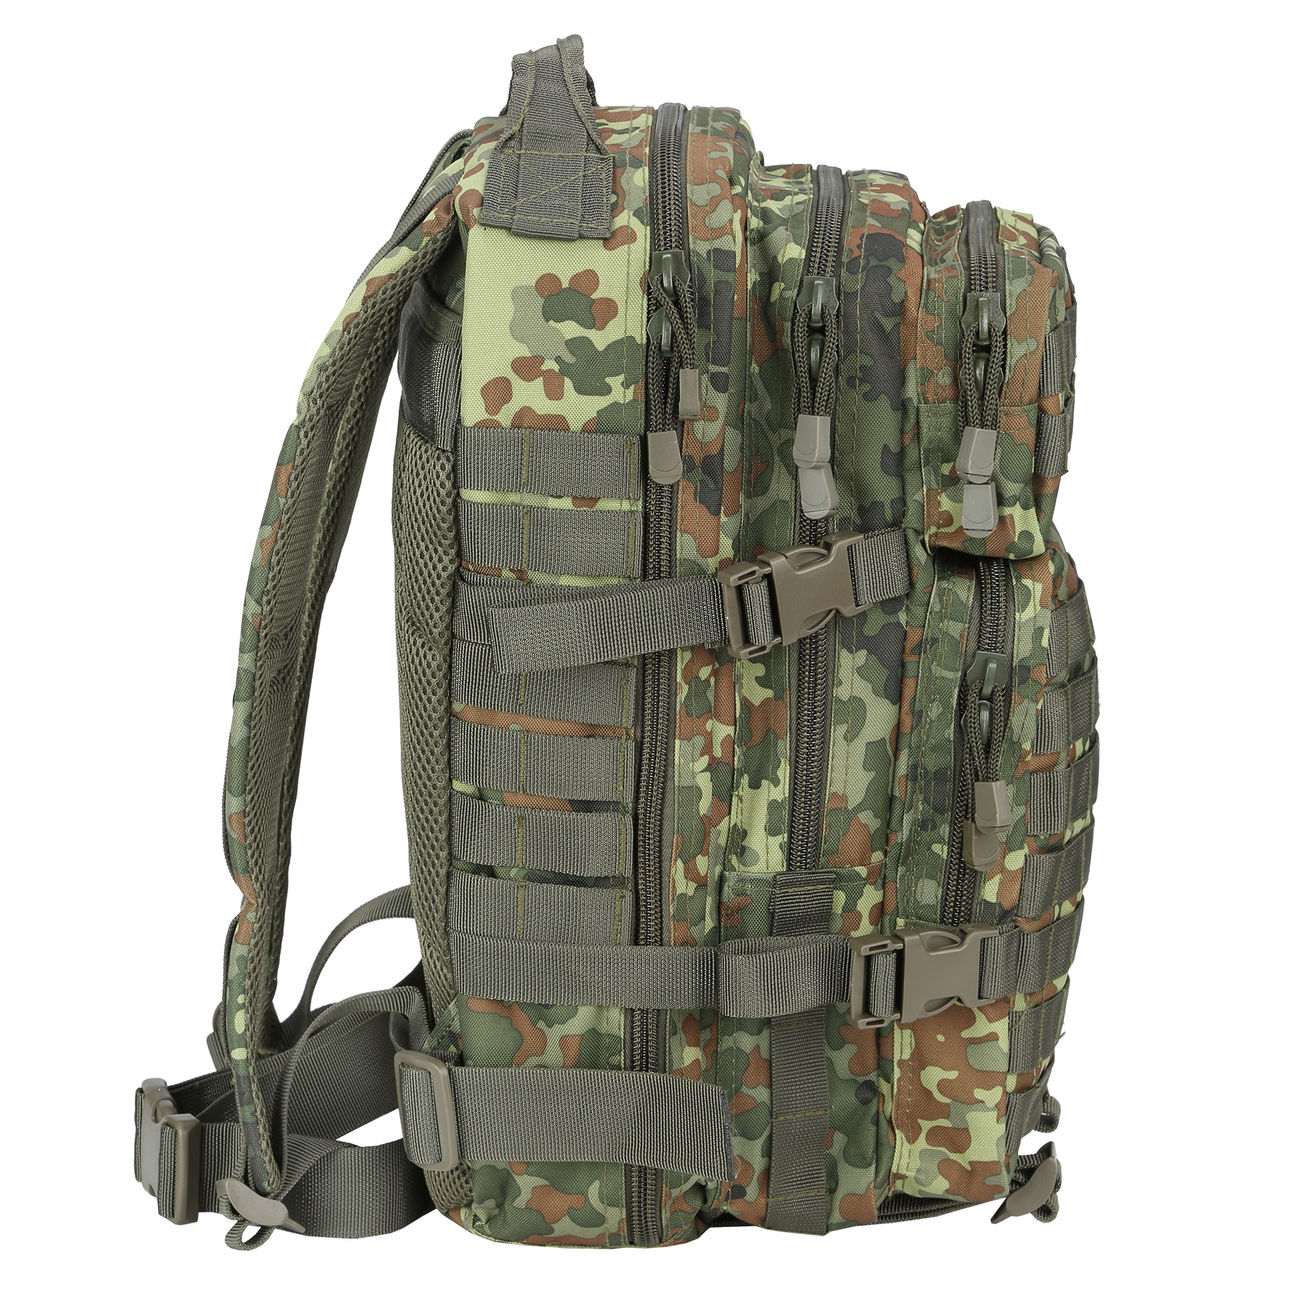 MFH Rucksack US Assault flecktarn 1